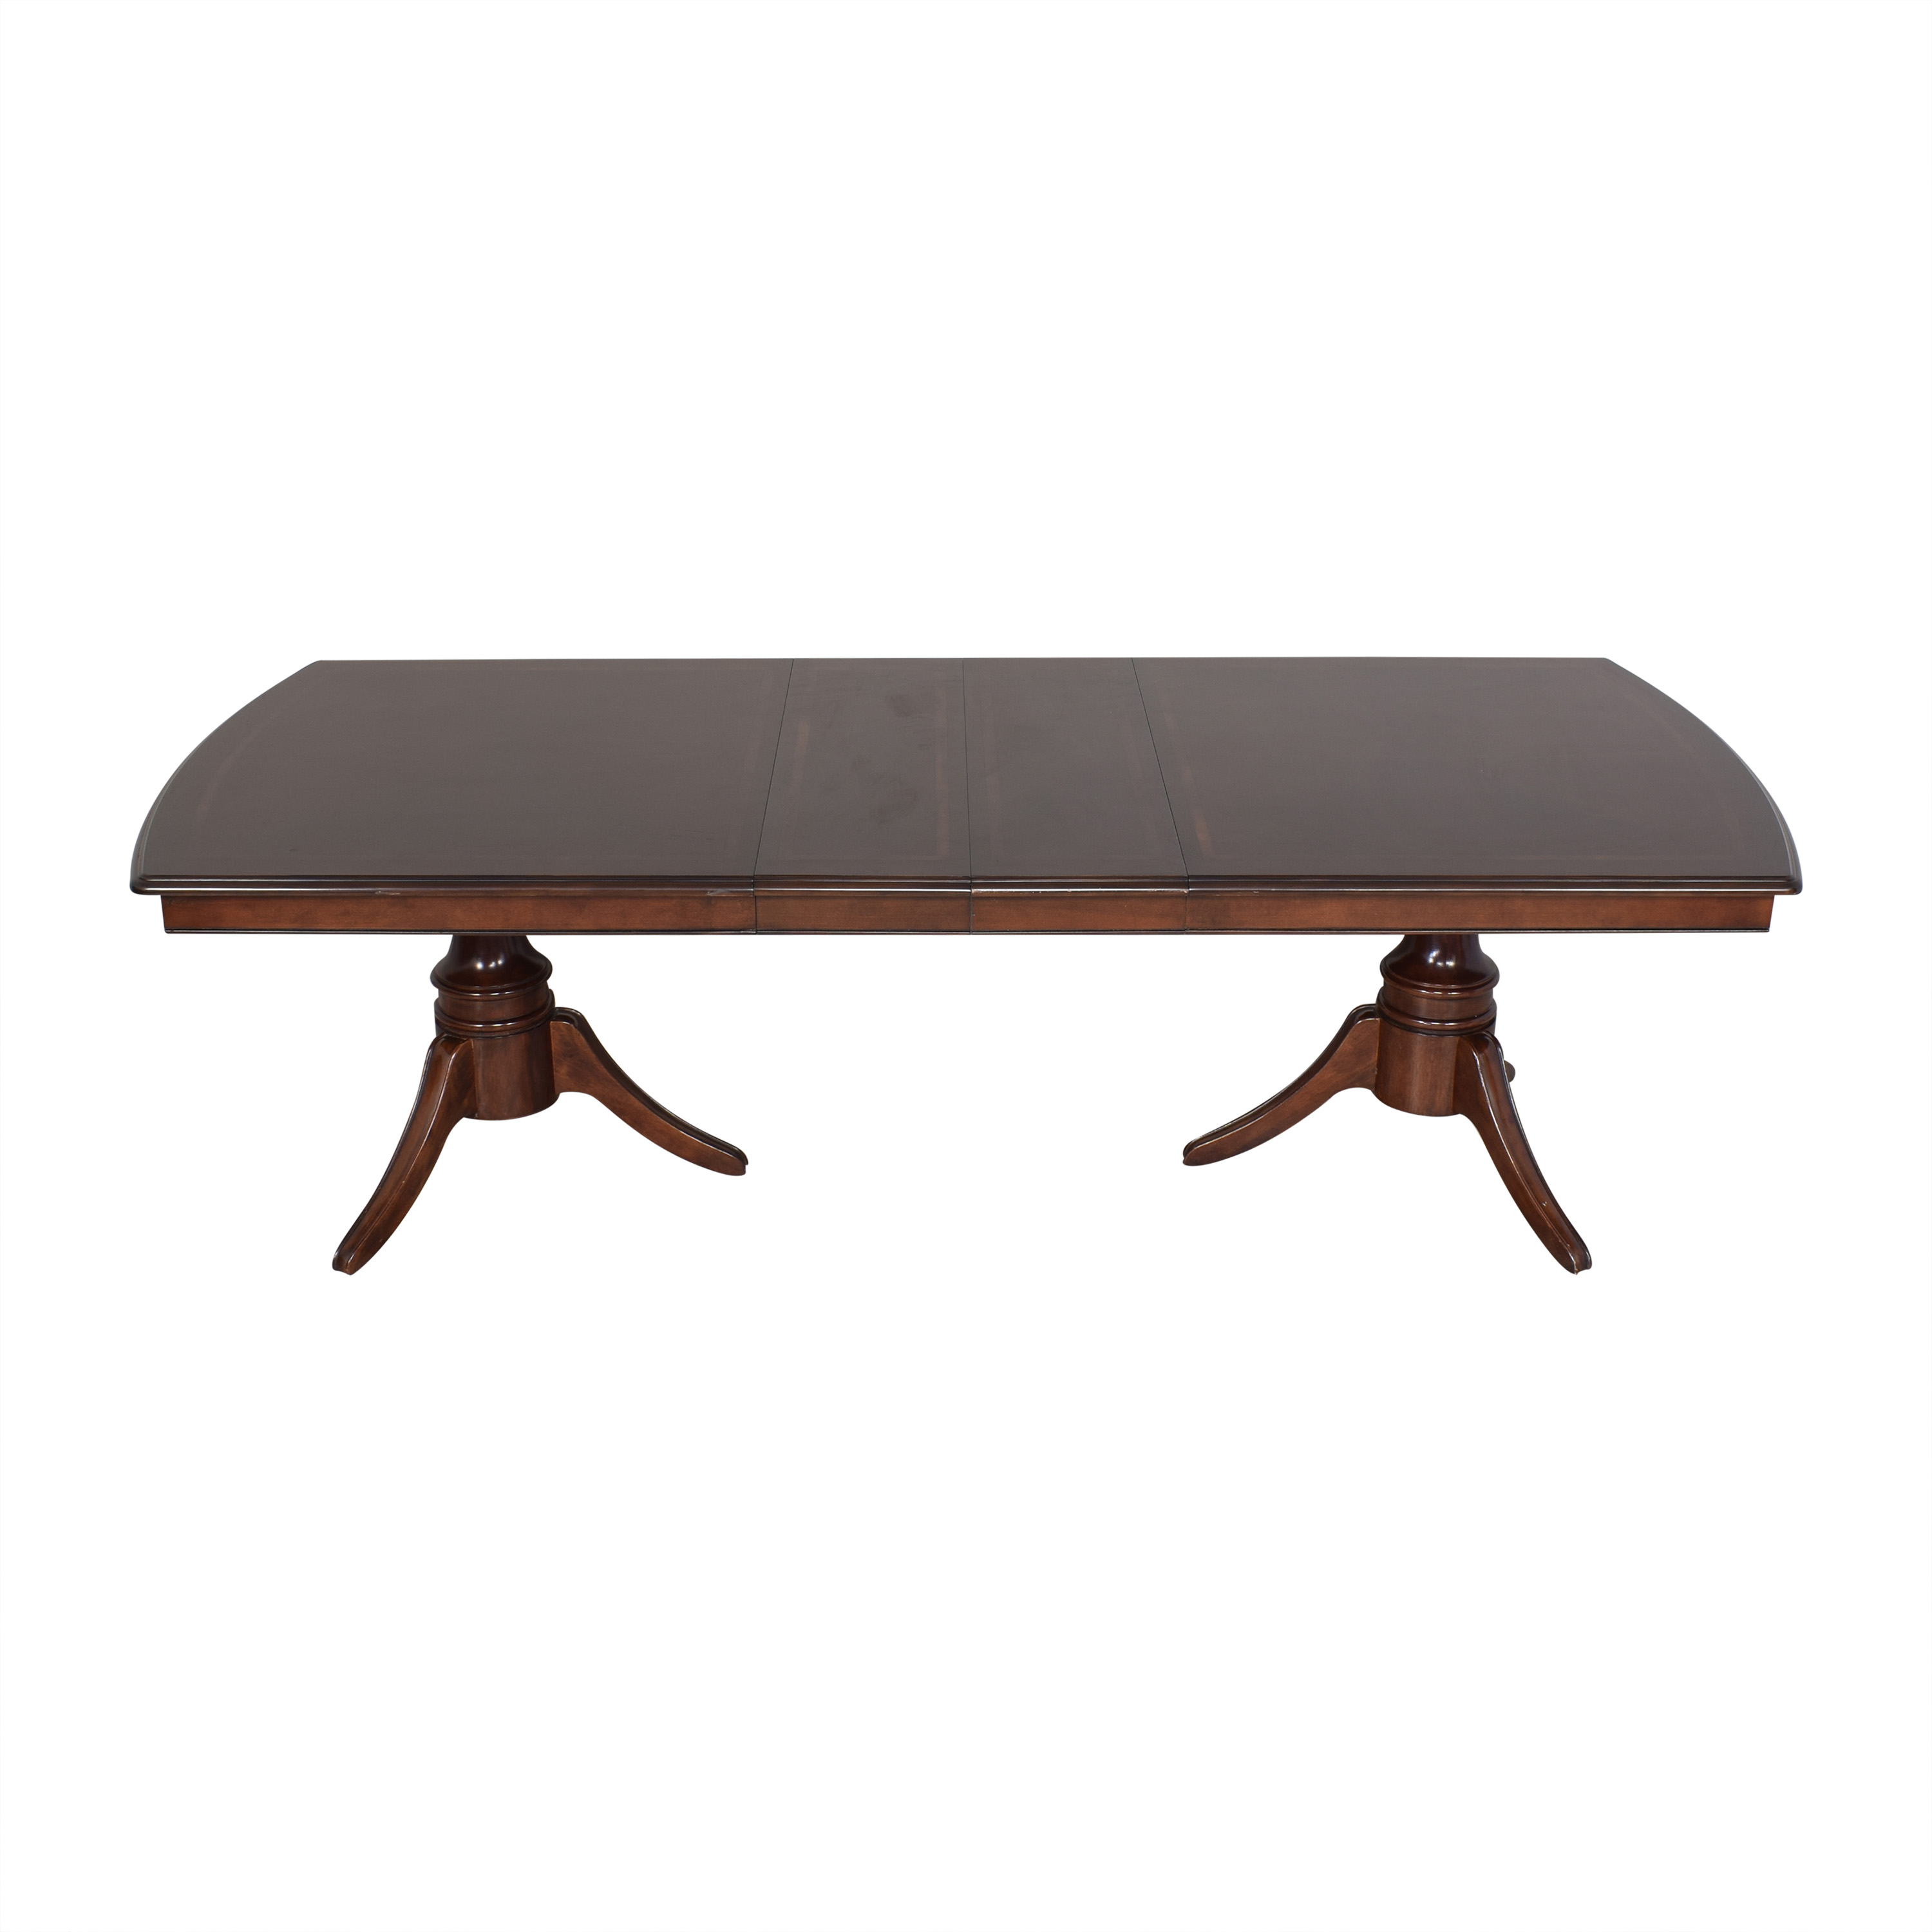 Raymour & Flanigan Raymour & Flanigan Extendable Dining Table second hand